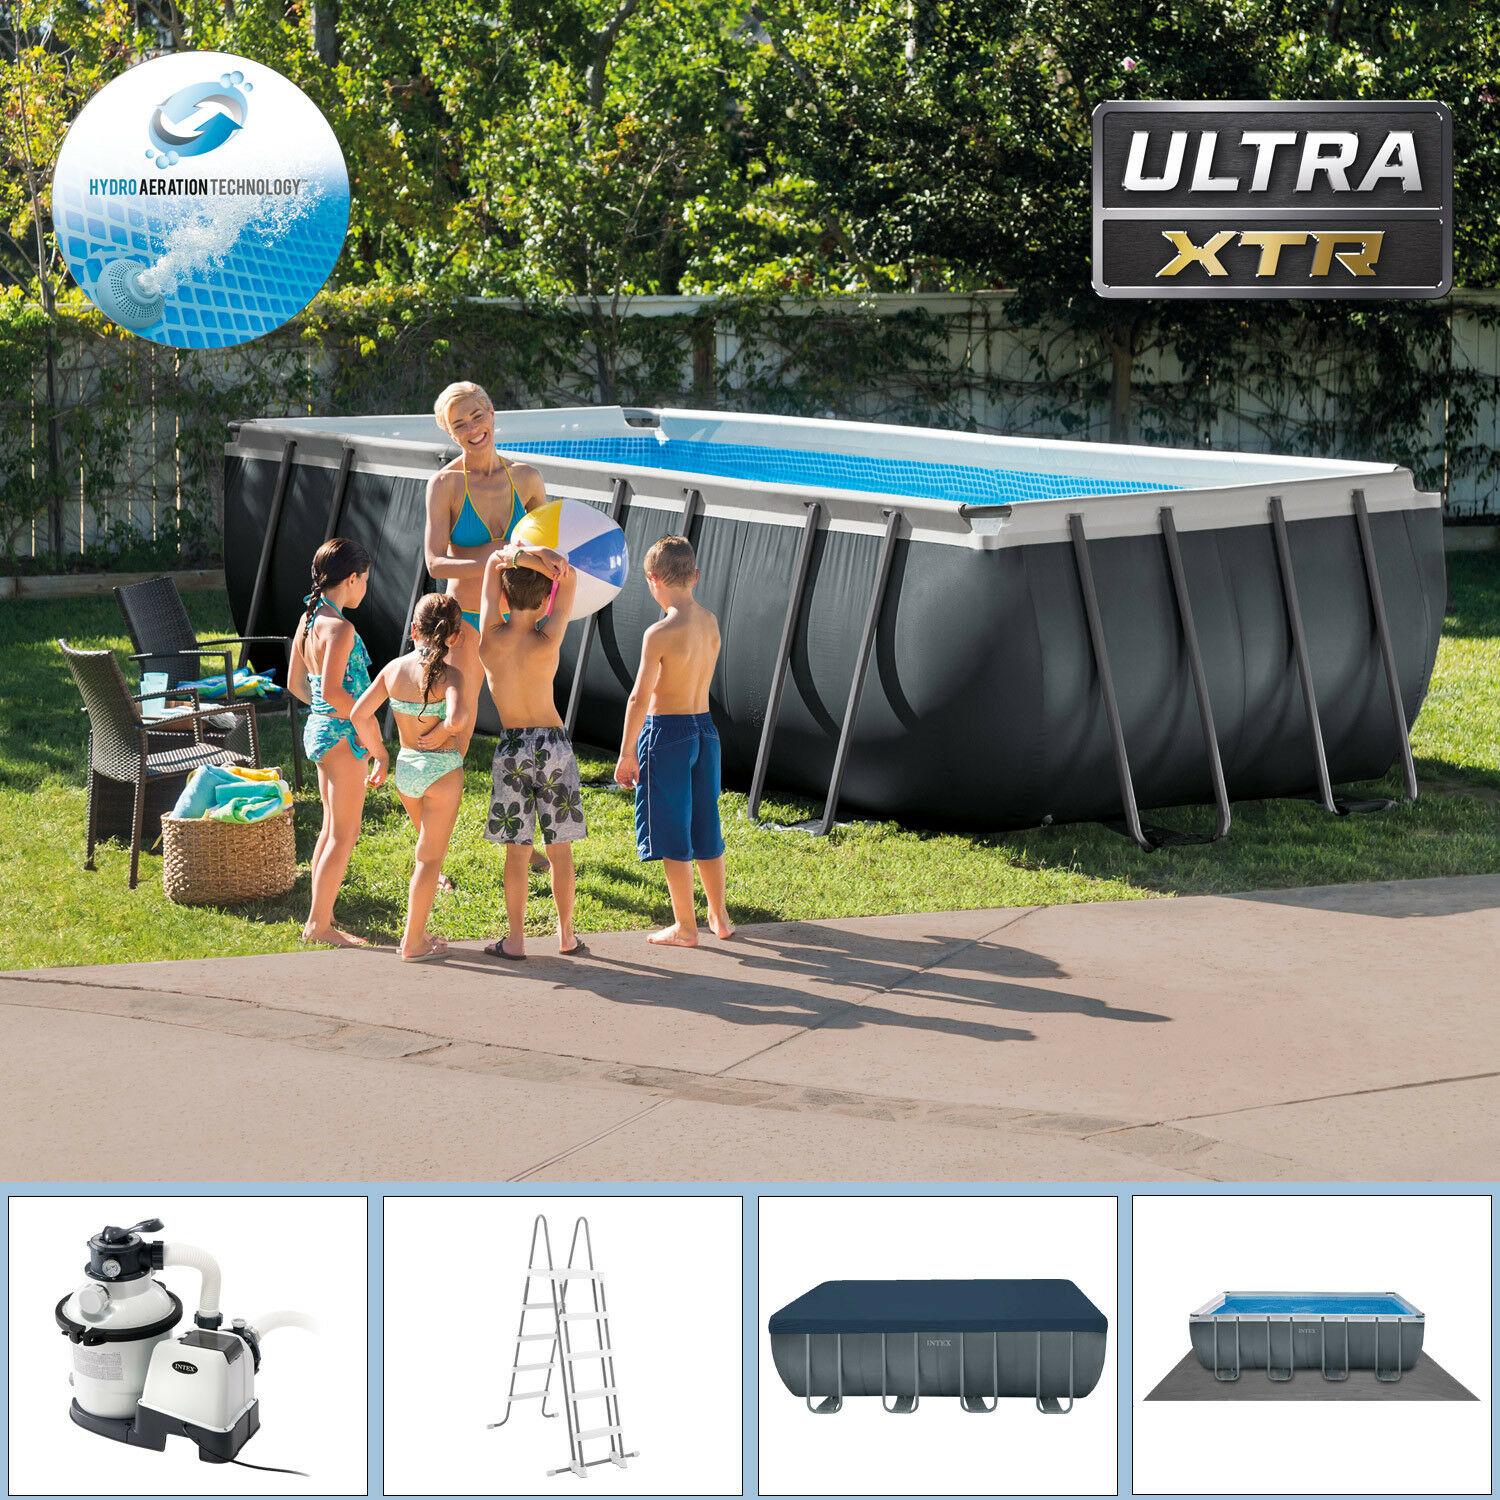 intex 549x274x132 swimming pool xtr rechteck stahlwand frame schwimmbad 28352gs eur 698 90. Black Bedroom Furniture Sets. Home Design Ideas